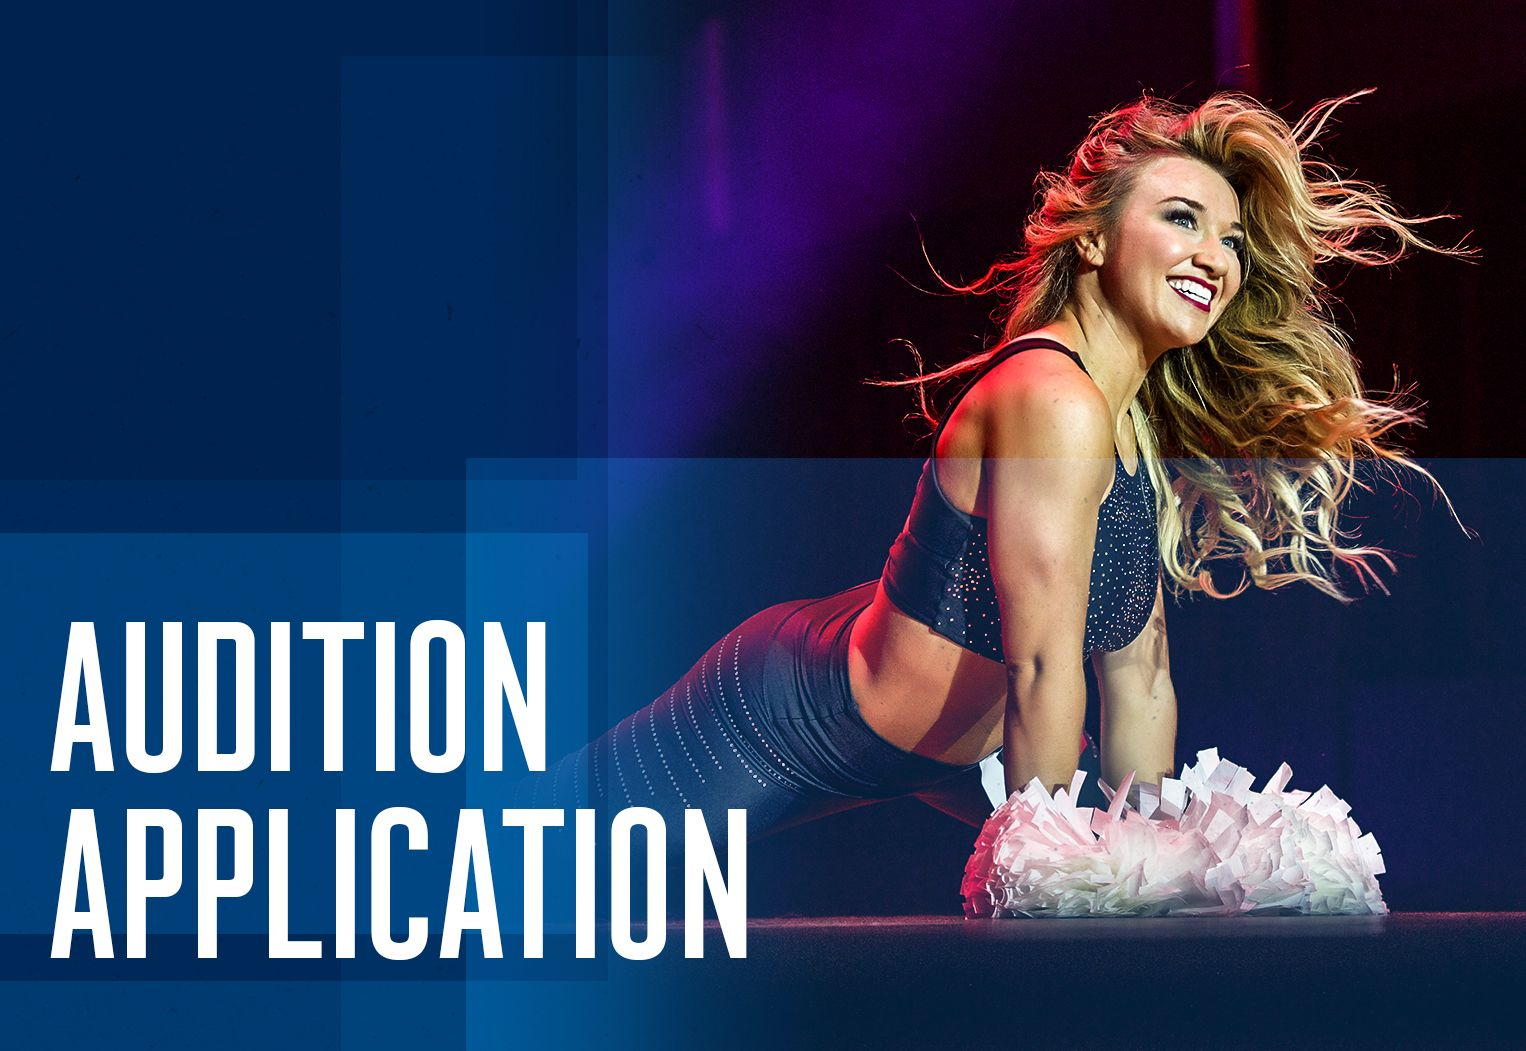 Cheer Audition Application